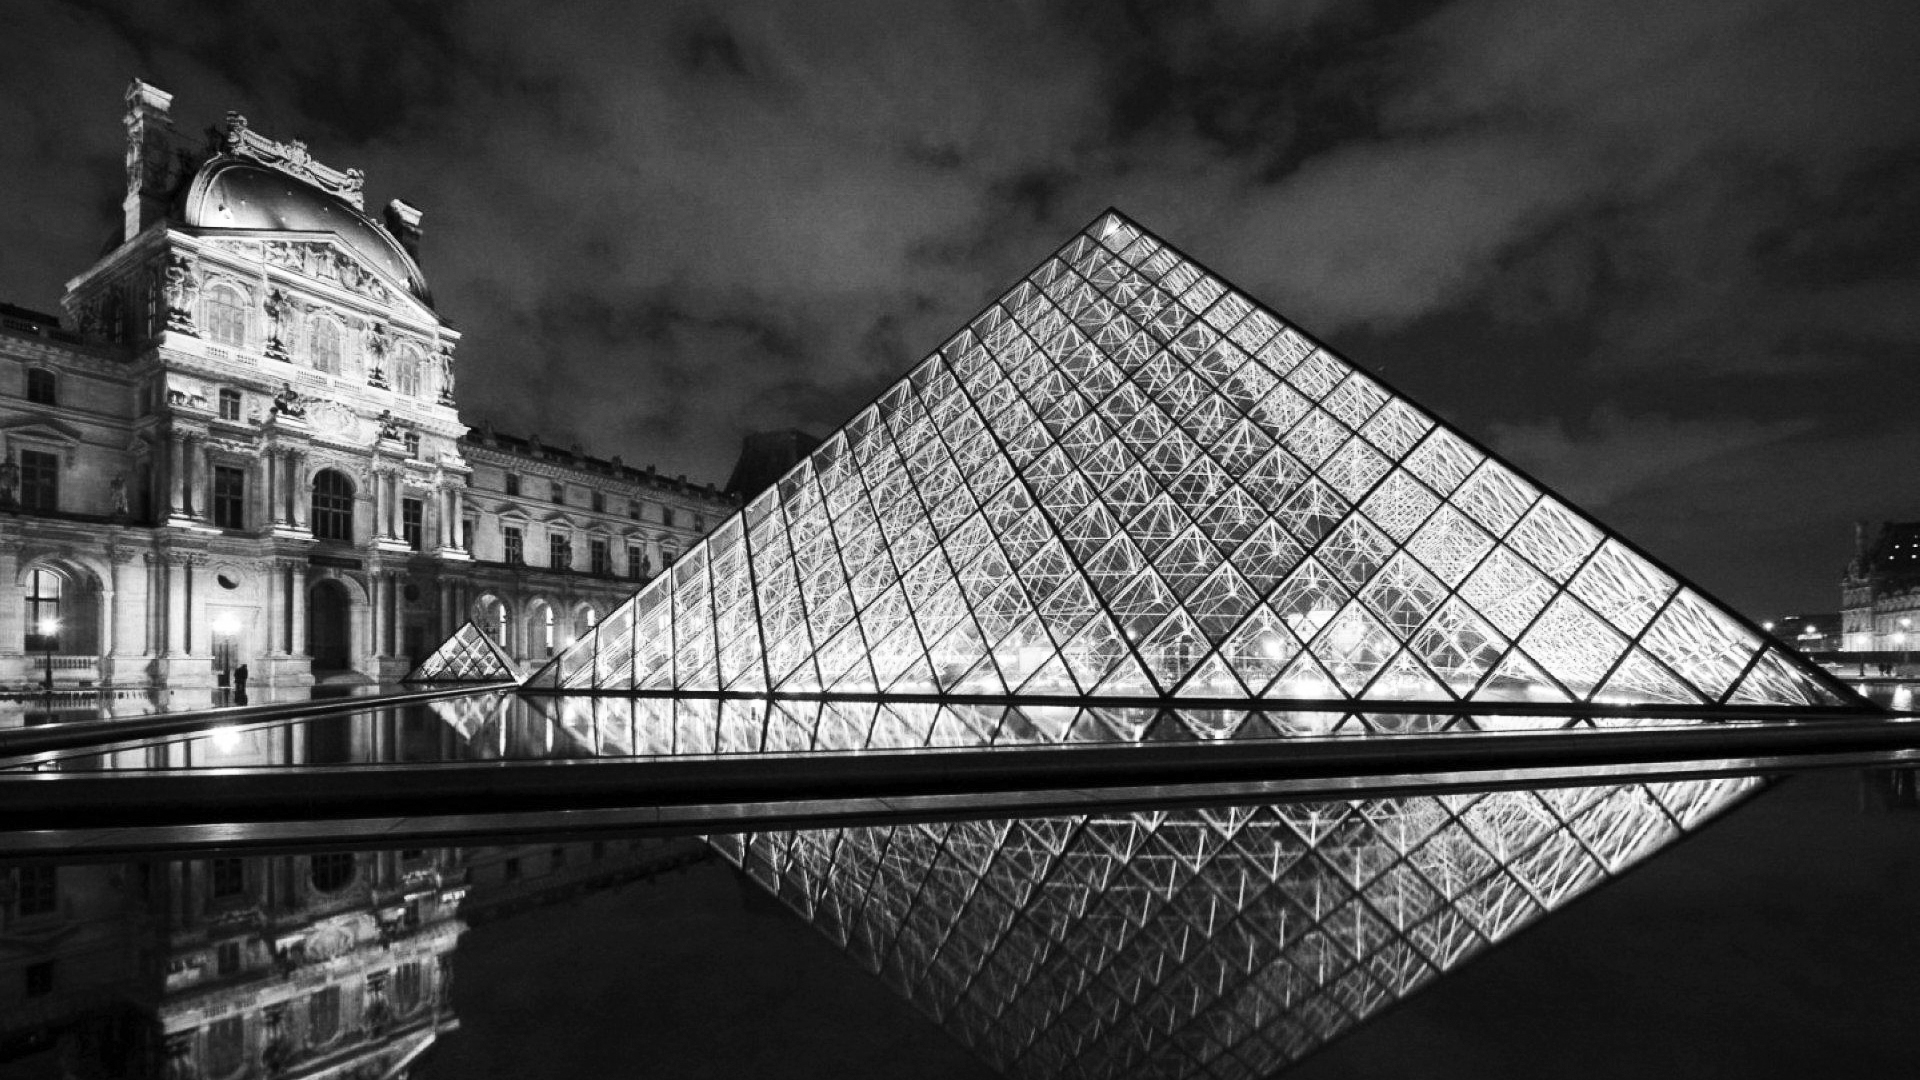 louvre-glass-pyramid-night-parisbw.jpg